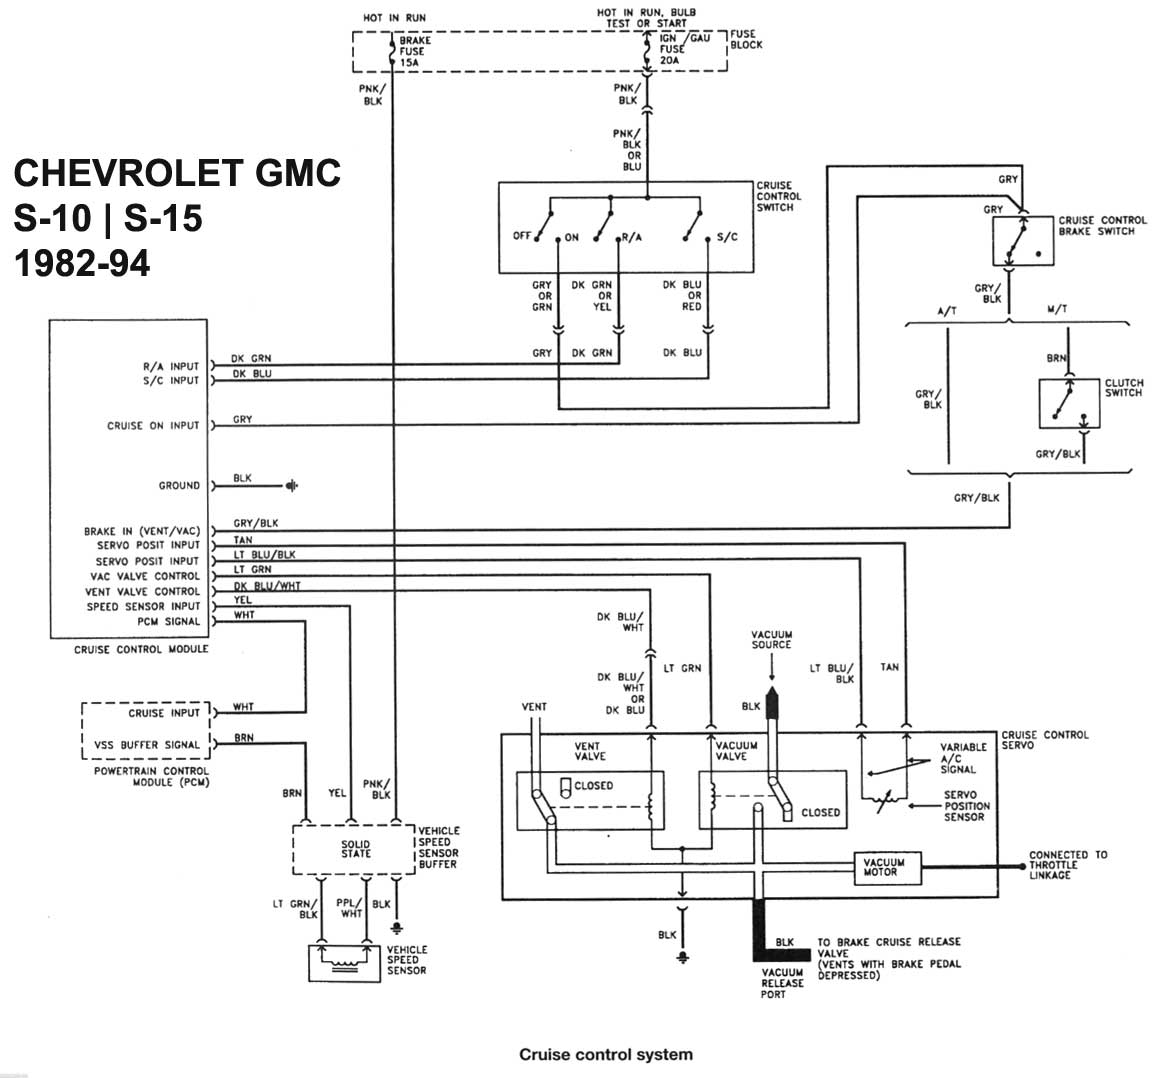 Chevy s wiring diagram